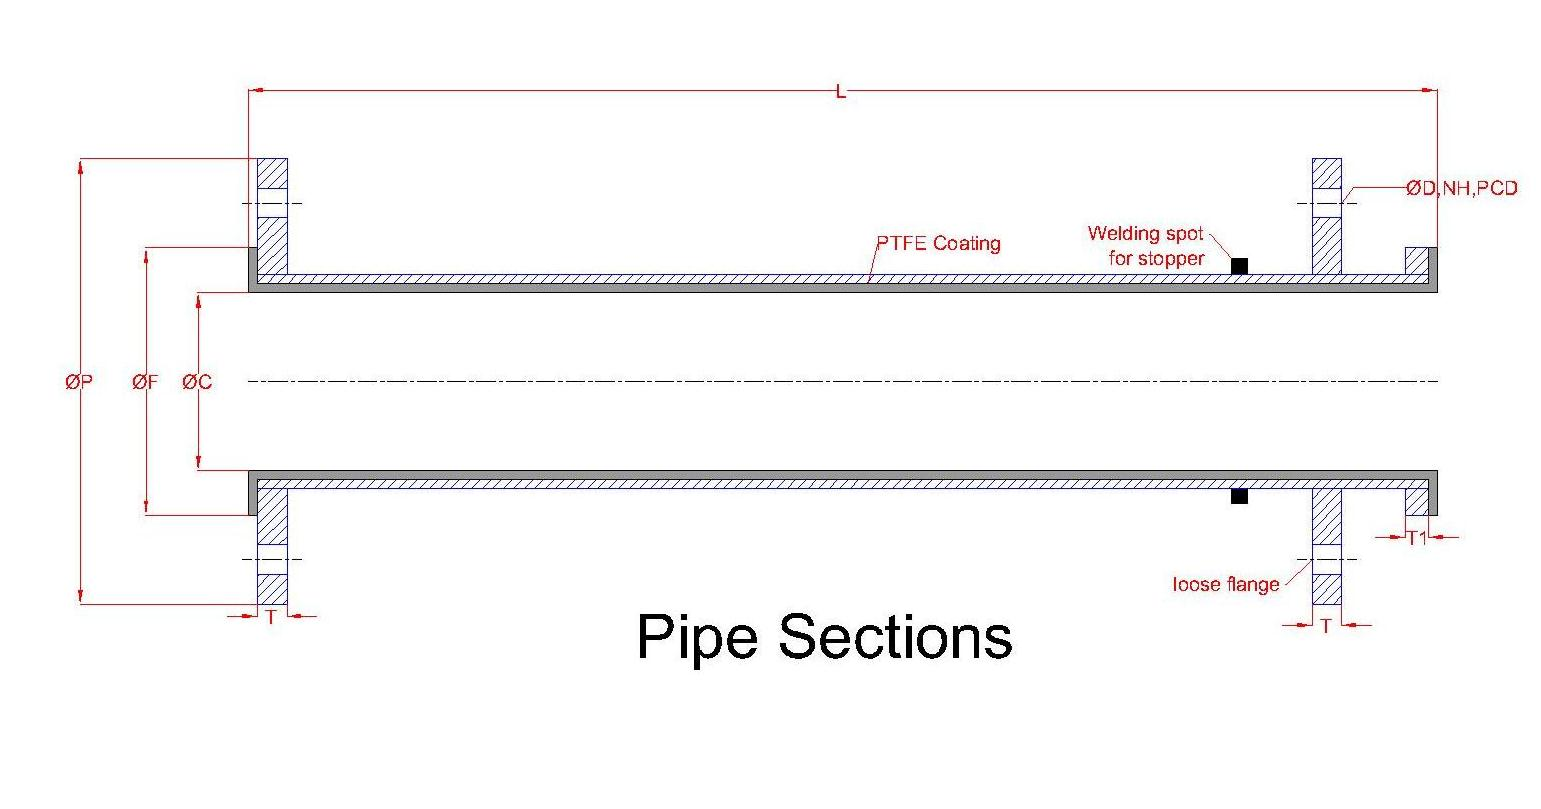 Pipe section 2